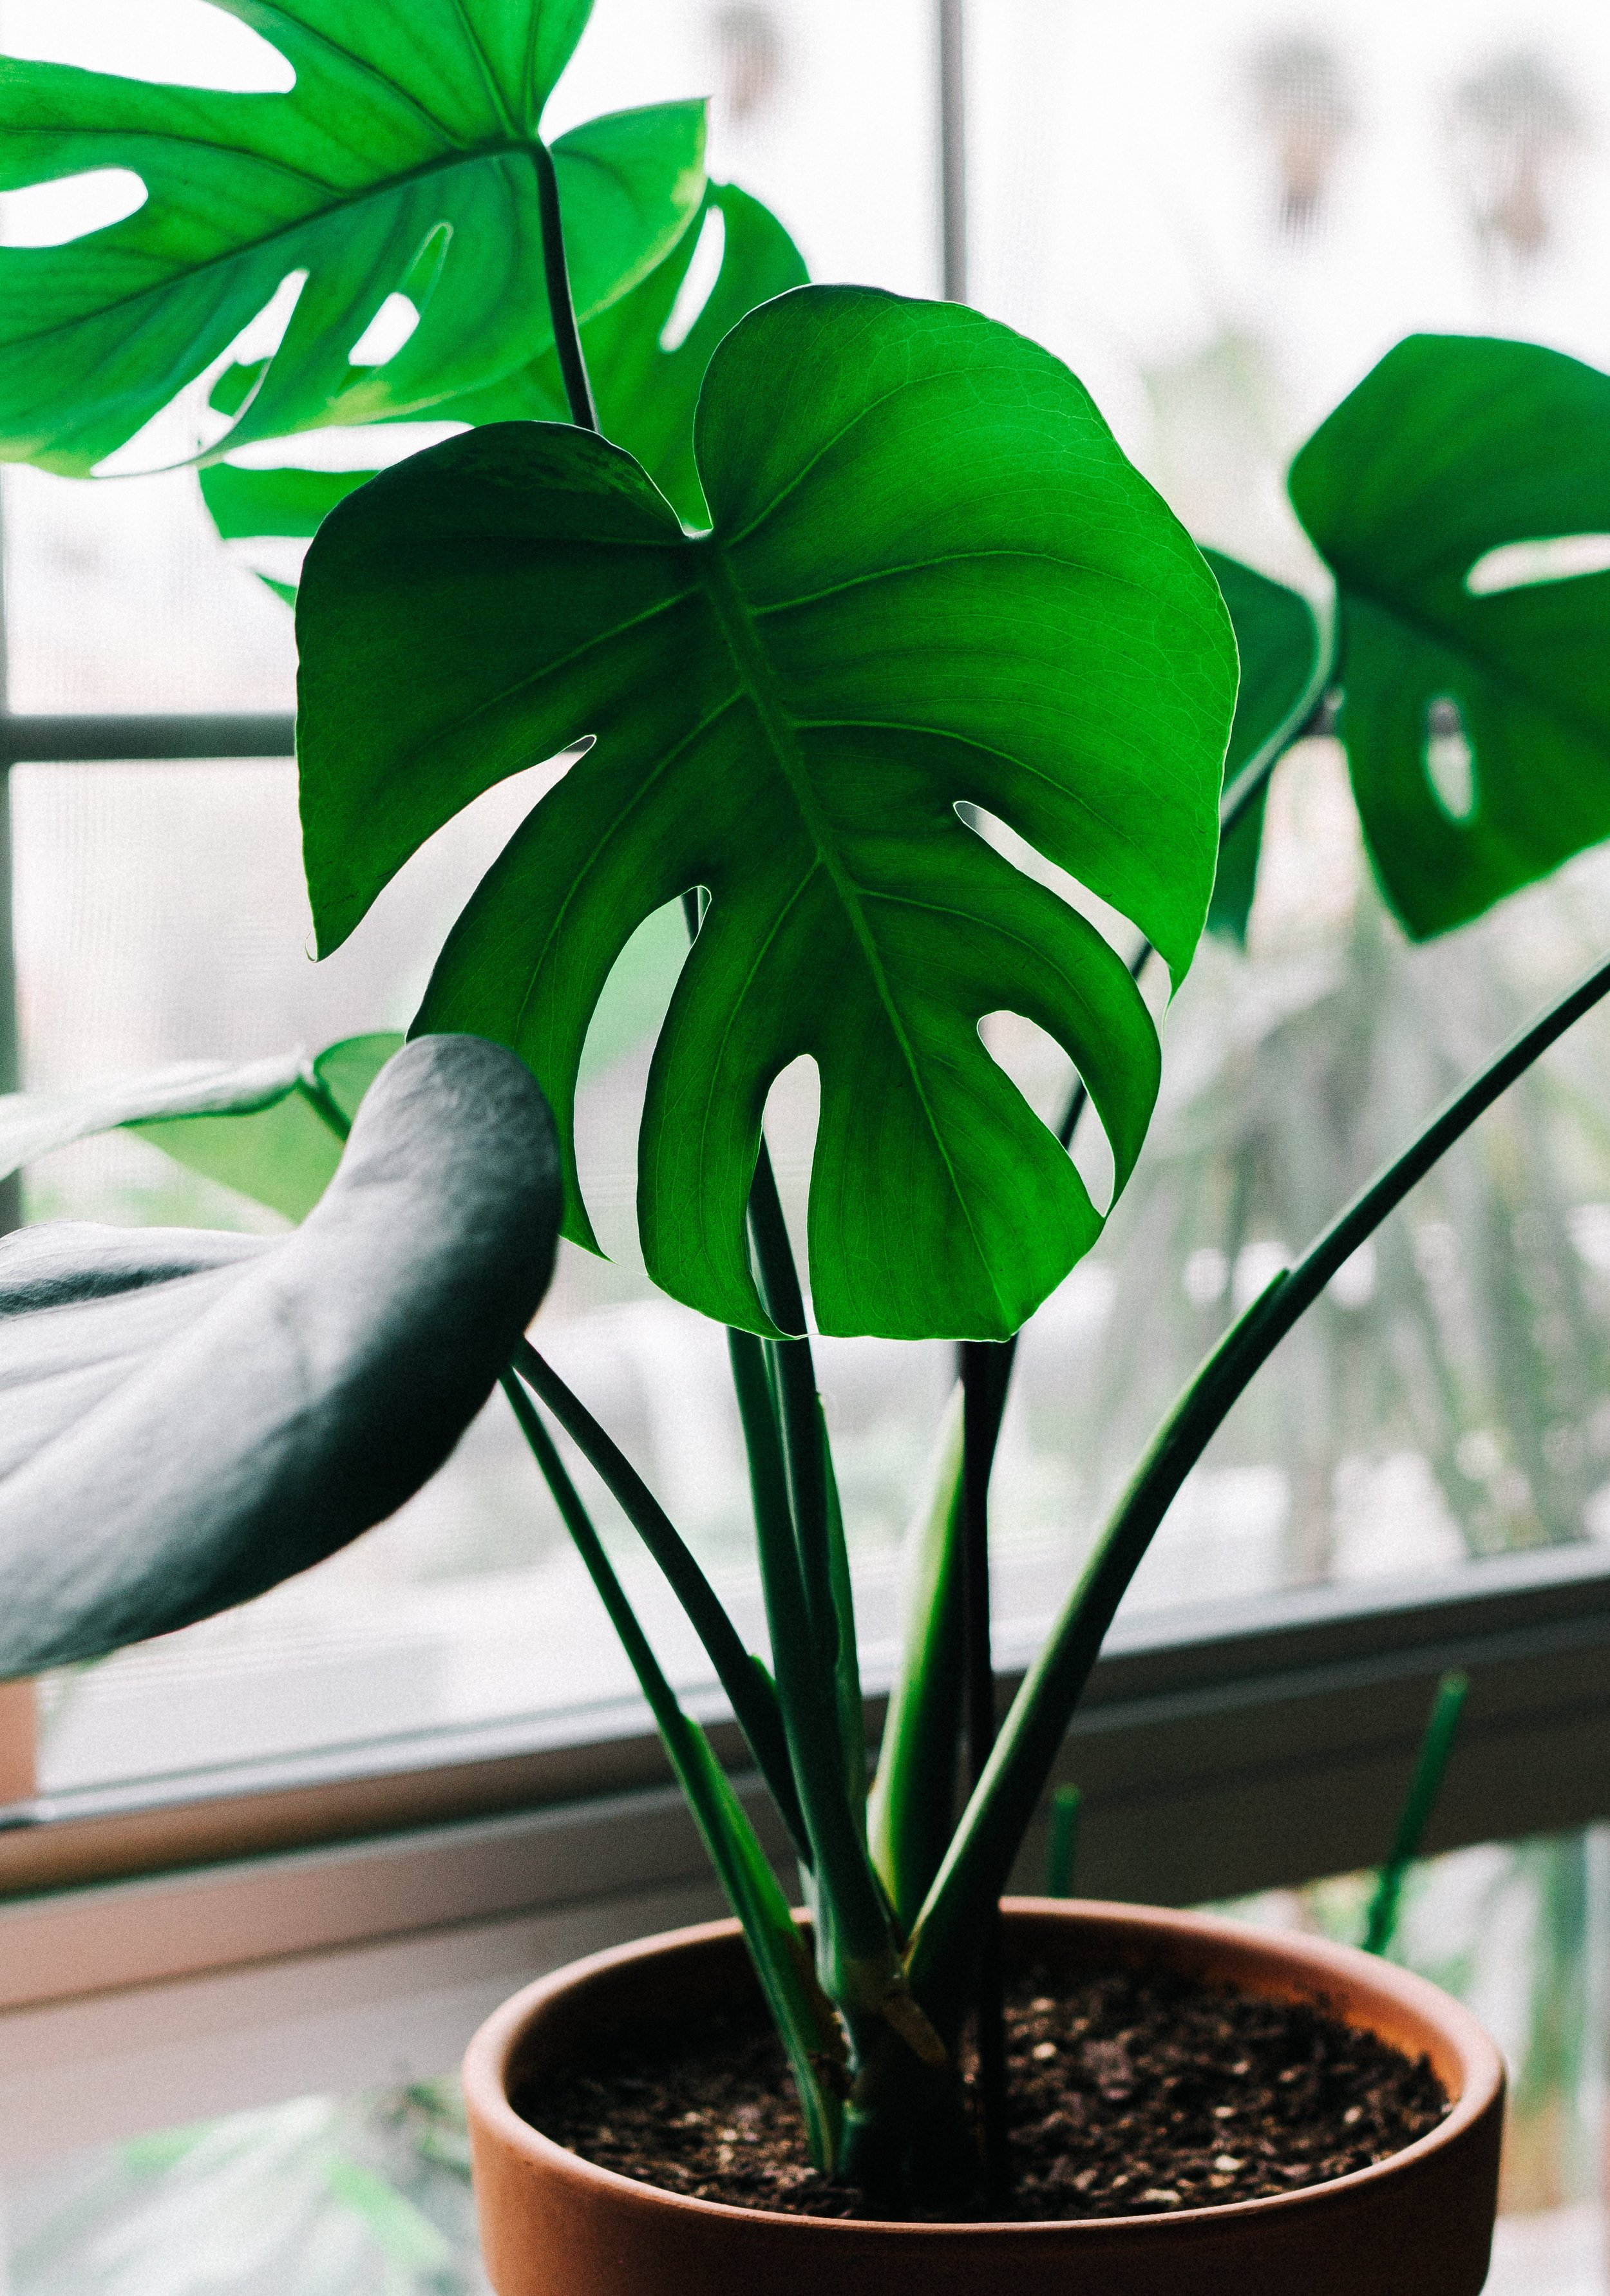 Plants - House plants can change the whole look and feel of a room and have been proven to be mood enhancers - as well as creating a healthier living and working environment. Aesthetically, plants have a natural ability to soften a room and make it feel more welcoming and homely.Some of our current favourite indoor plants include baby spider plants for window sills, large Fiddle Leaf Fig Trees when you're after an exotic feel, or some of our pure air plants to beautify your bathroom or kids' playroom.